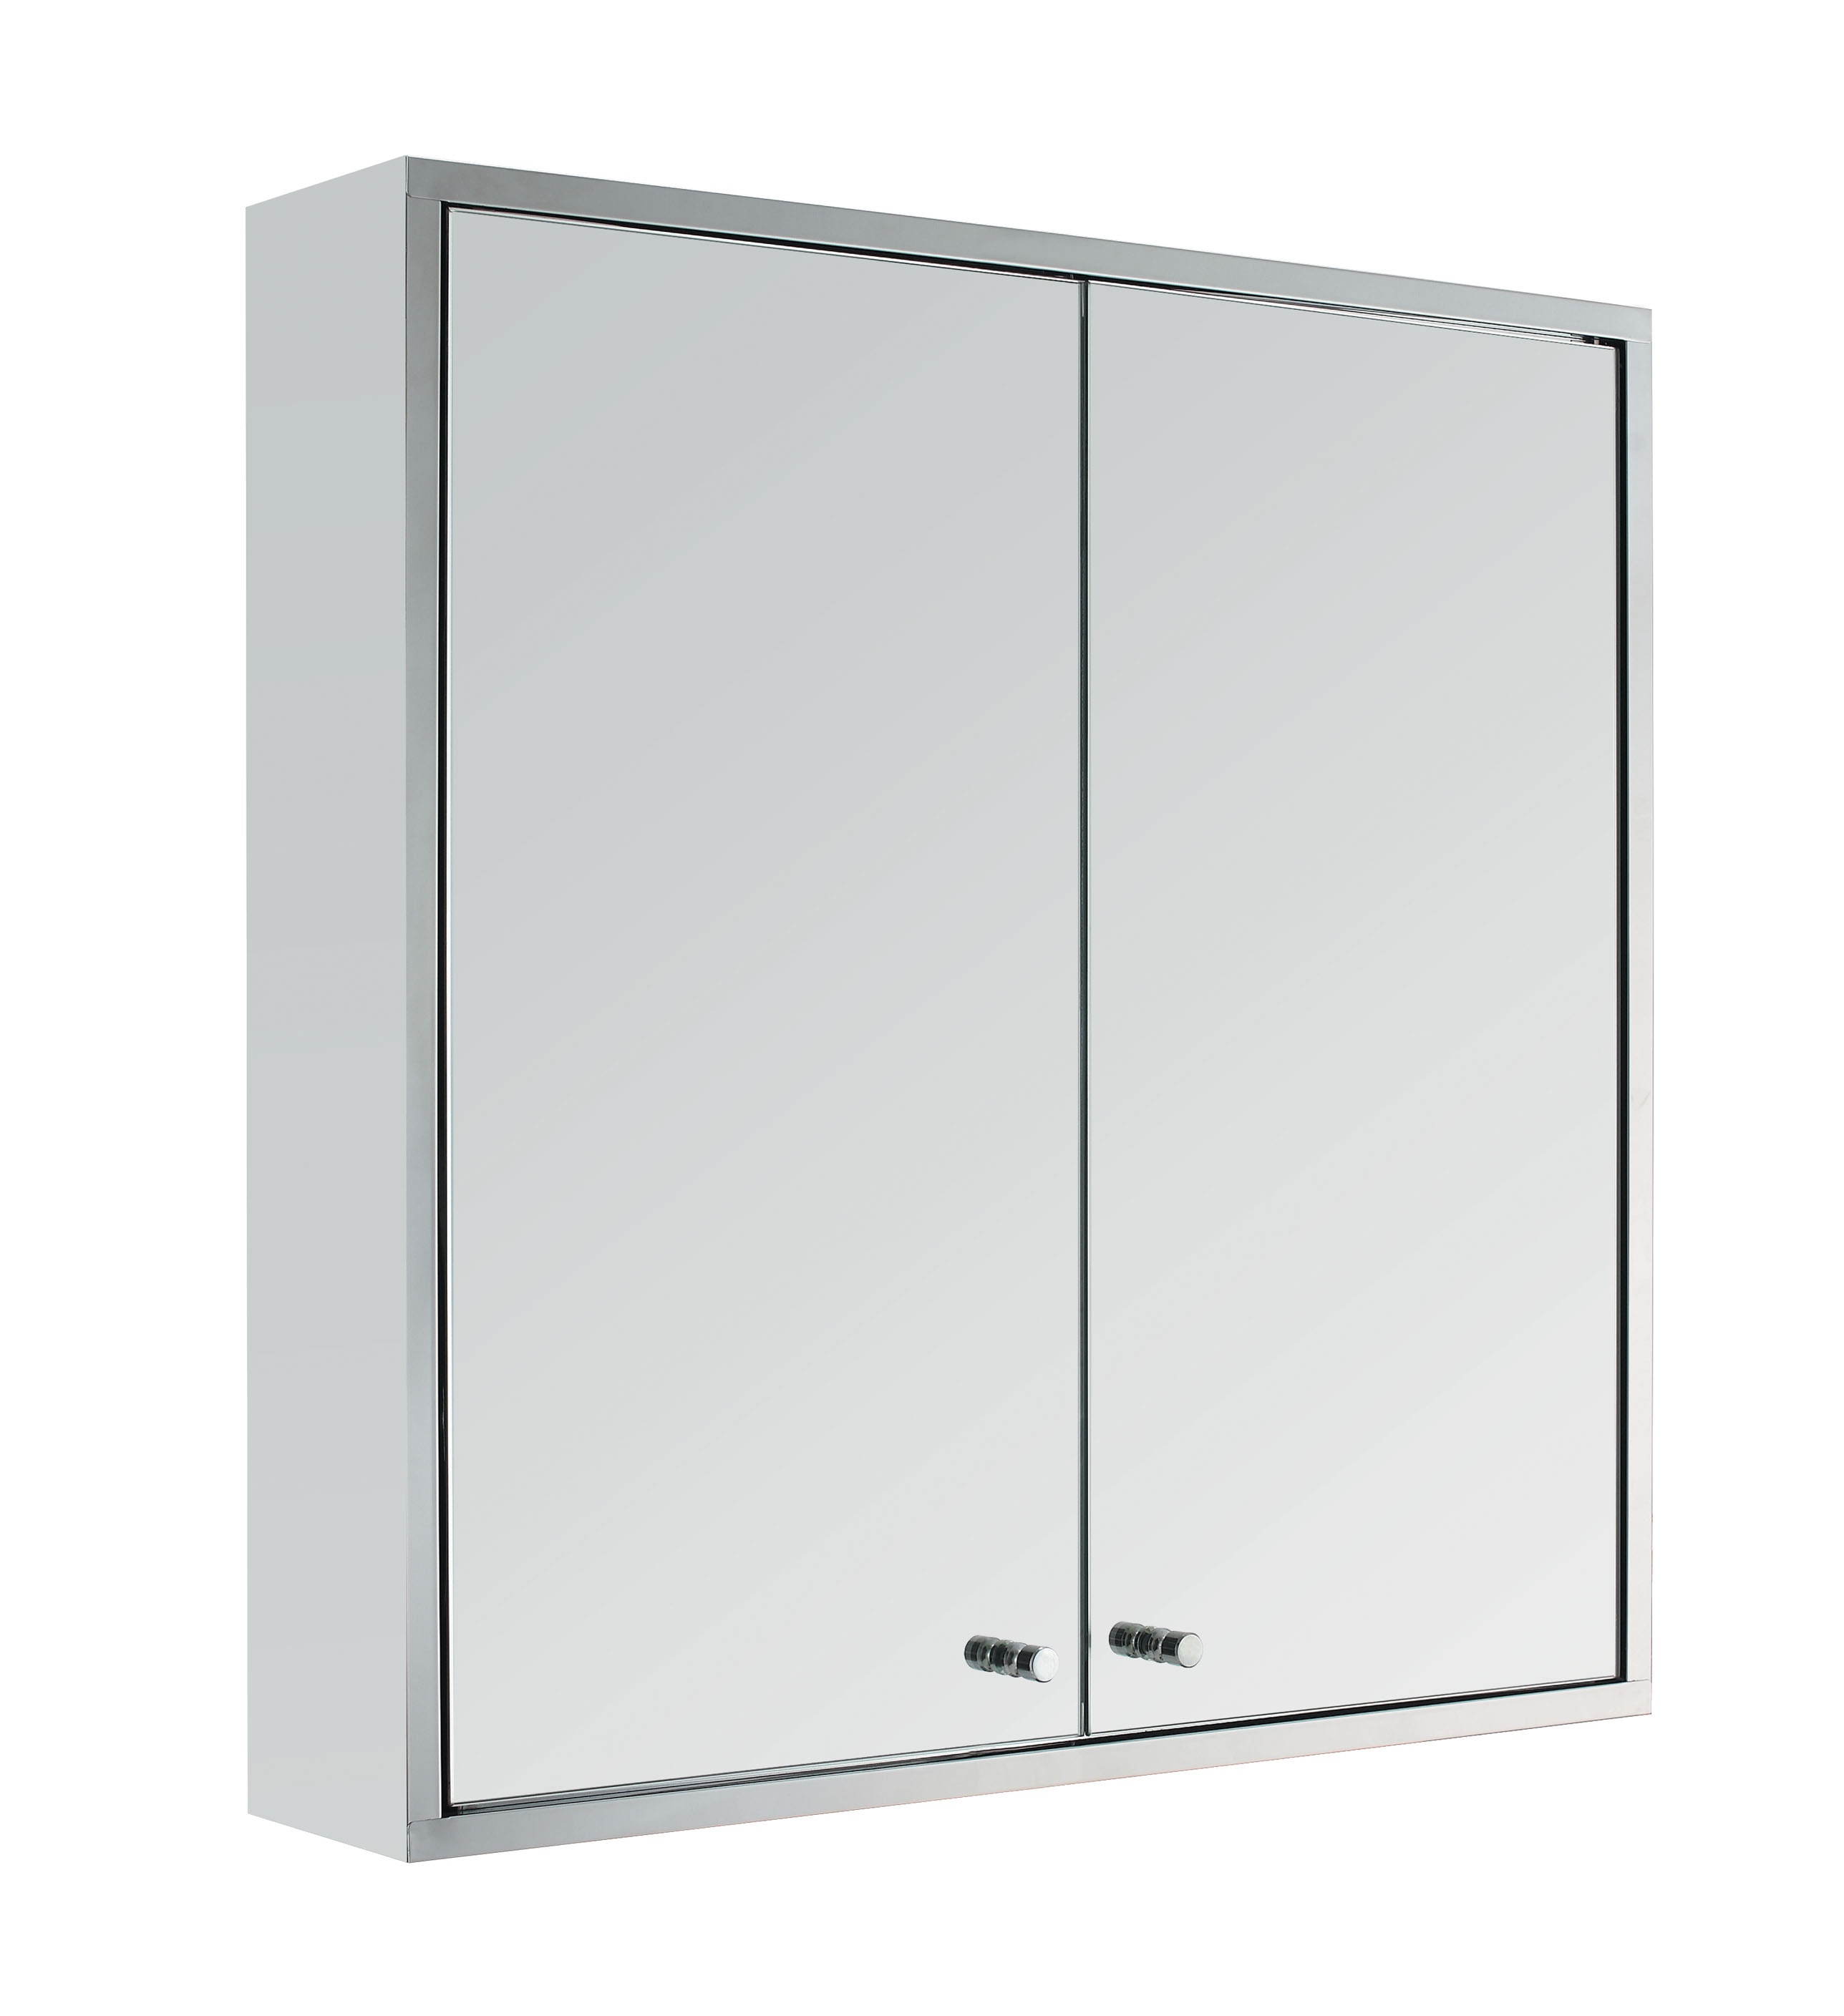 Bathroom wall cabinets with mirrors - Sentinel Stainless Steel Wall Mount Bathroom Cabinet With Shelf Storage Cupboard Mirror